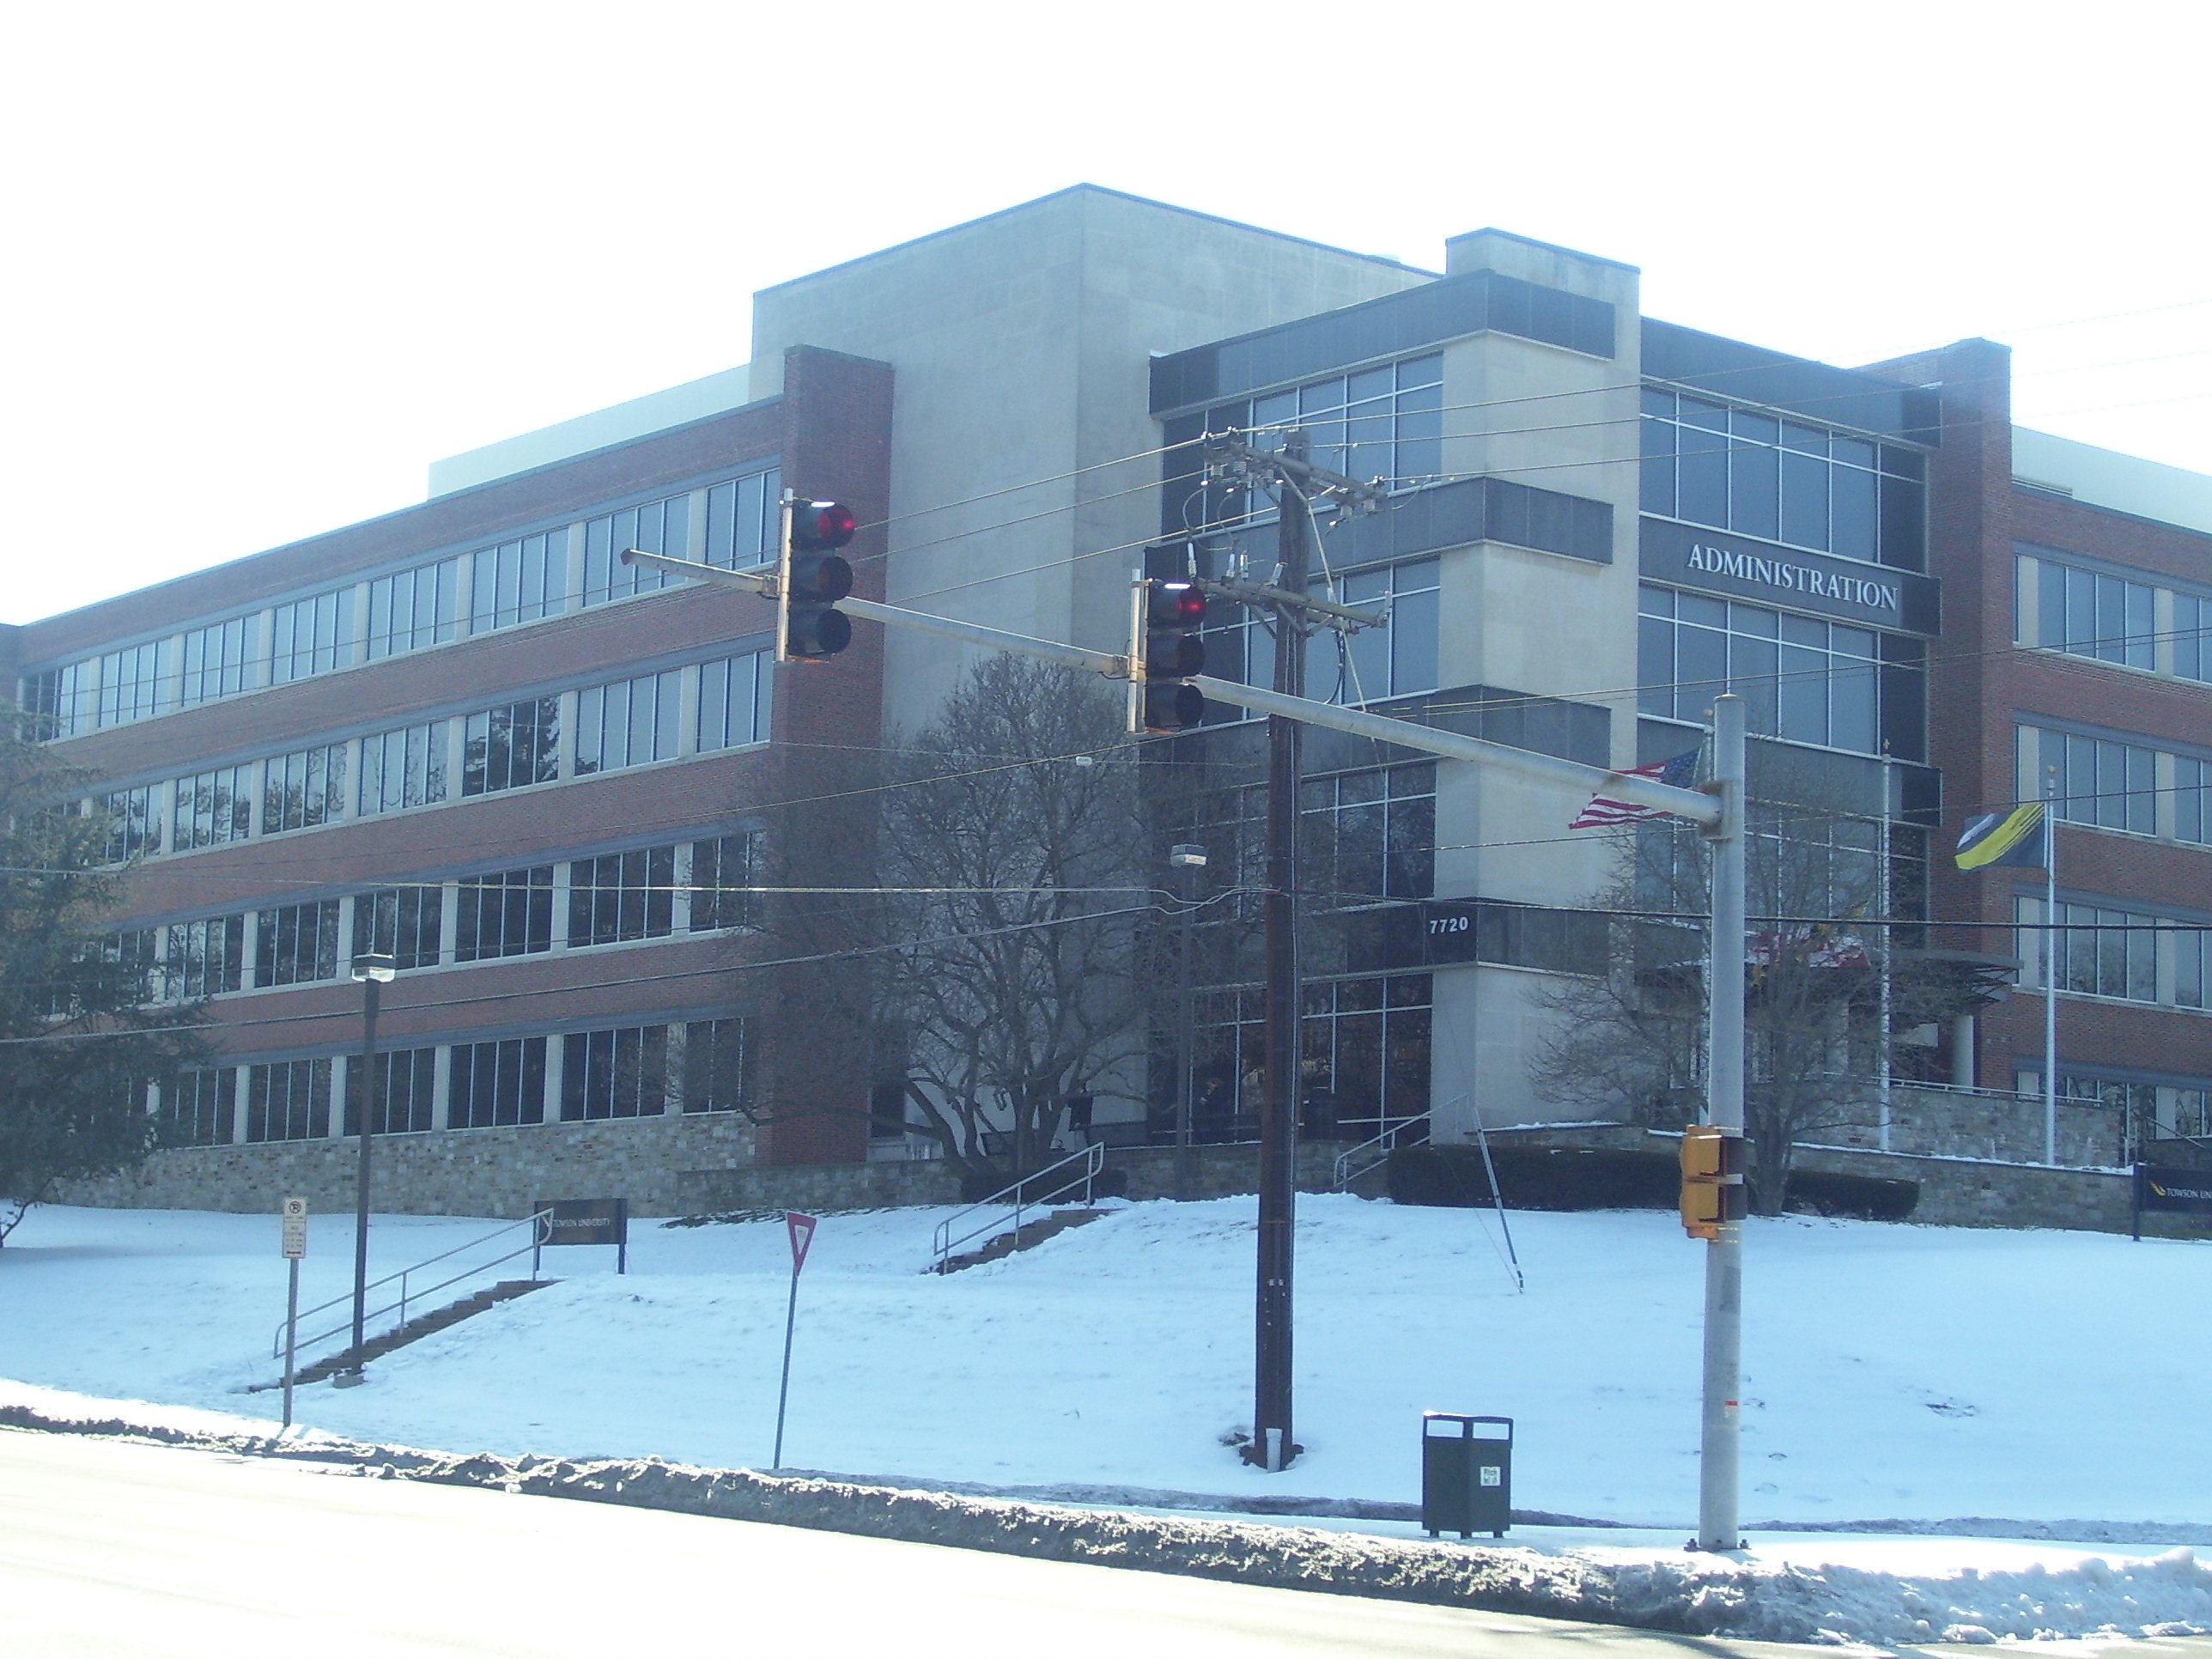 A current photo of the Administration Building.